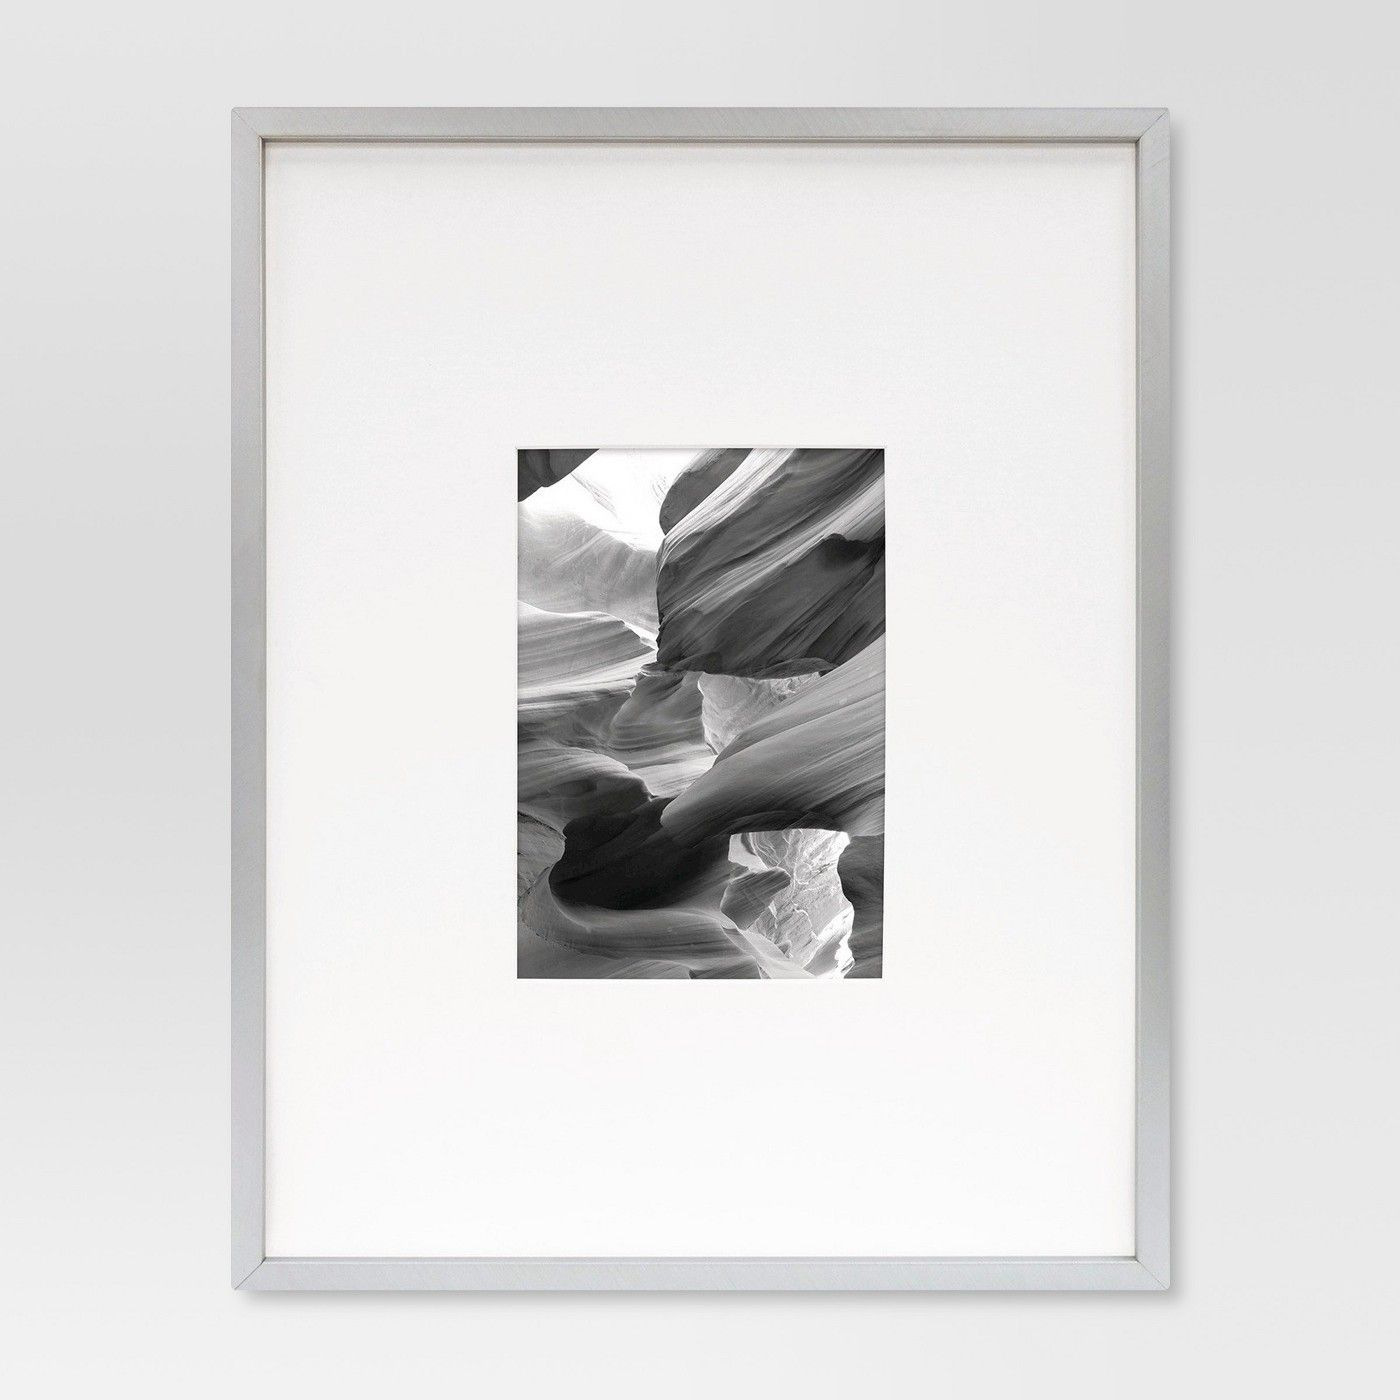 Metal Frame Brushed Silver 11x14 Matted For 5x7 Photo Room Essentials Image 1 Of 5 Photo Room Silver Room Room Essentials